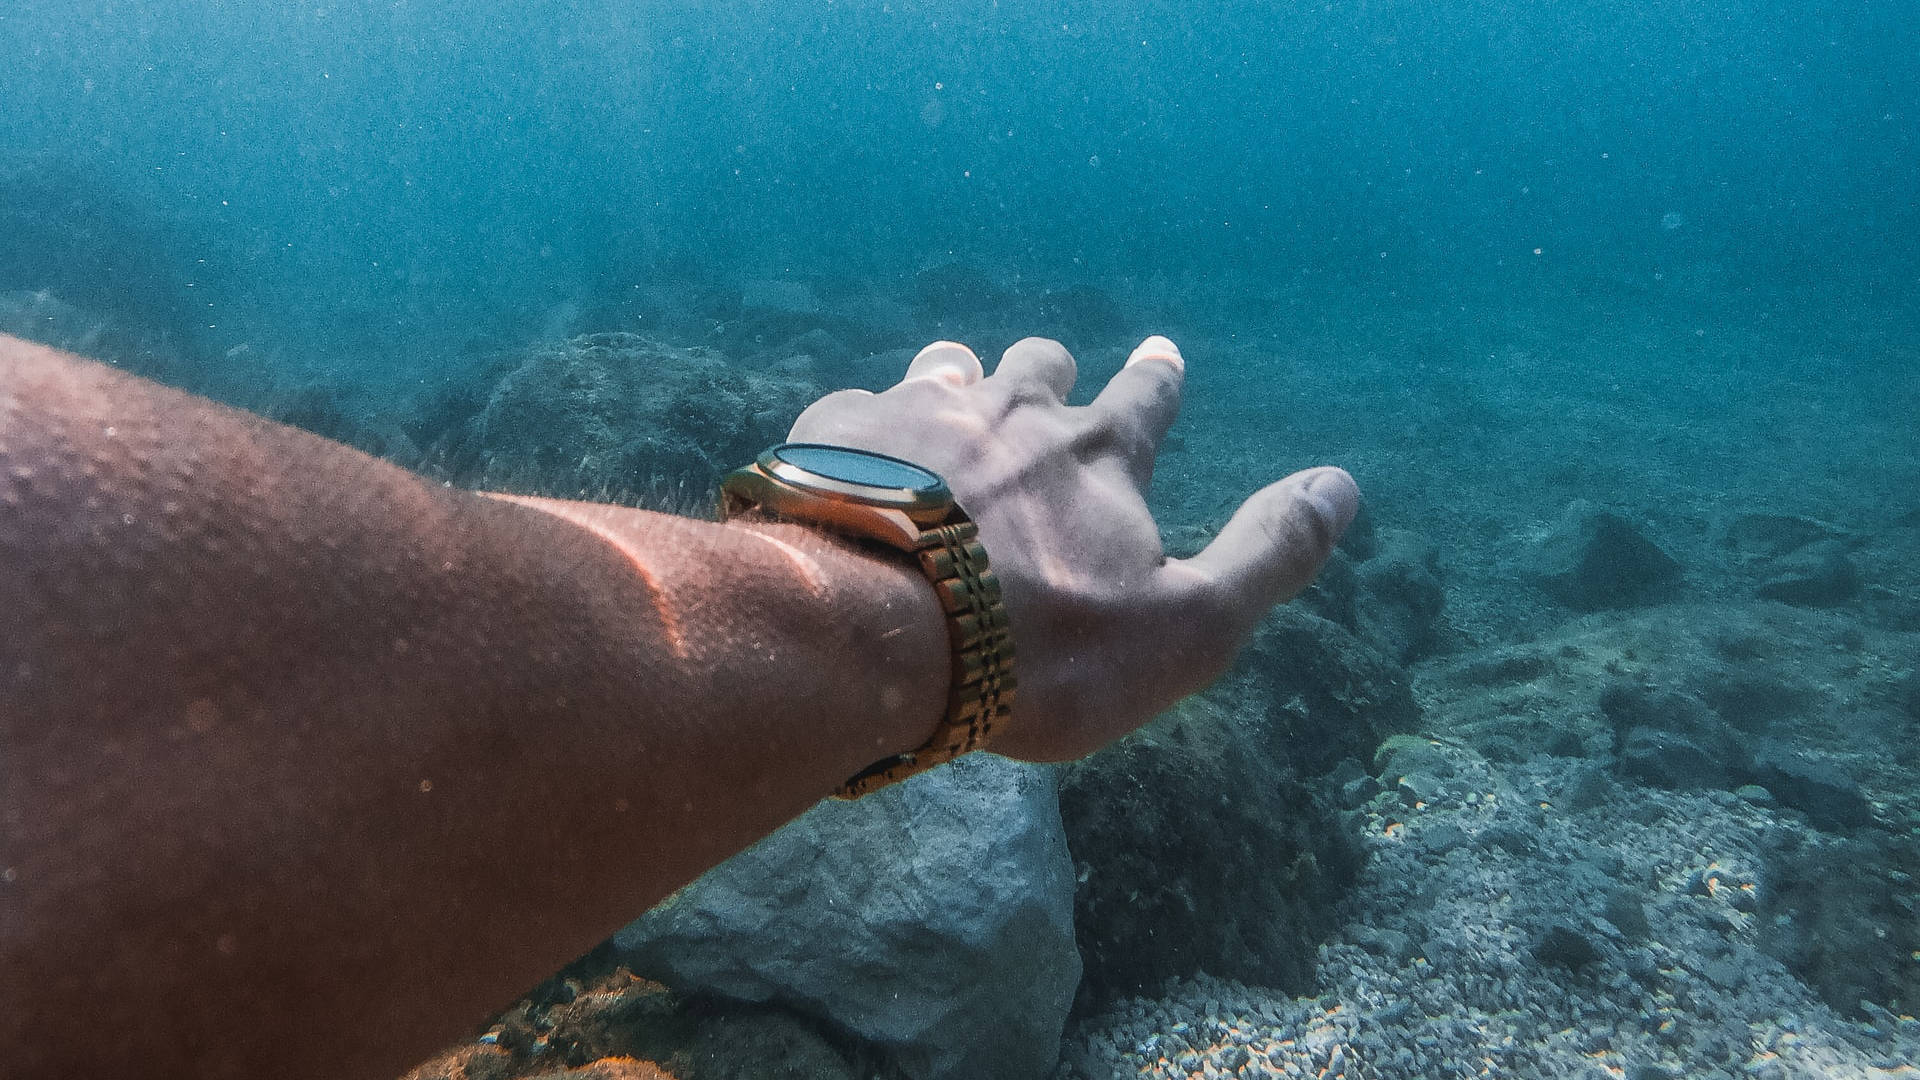 Watch being used underwater after water resistance testing for customer in Perth